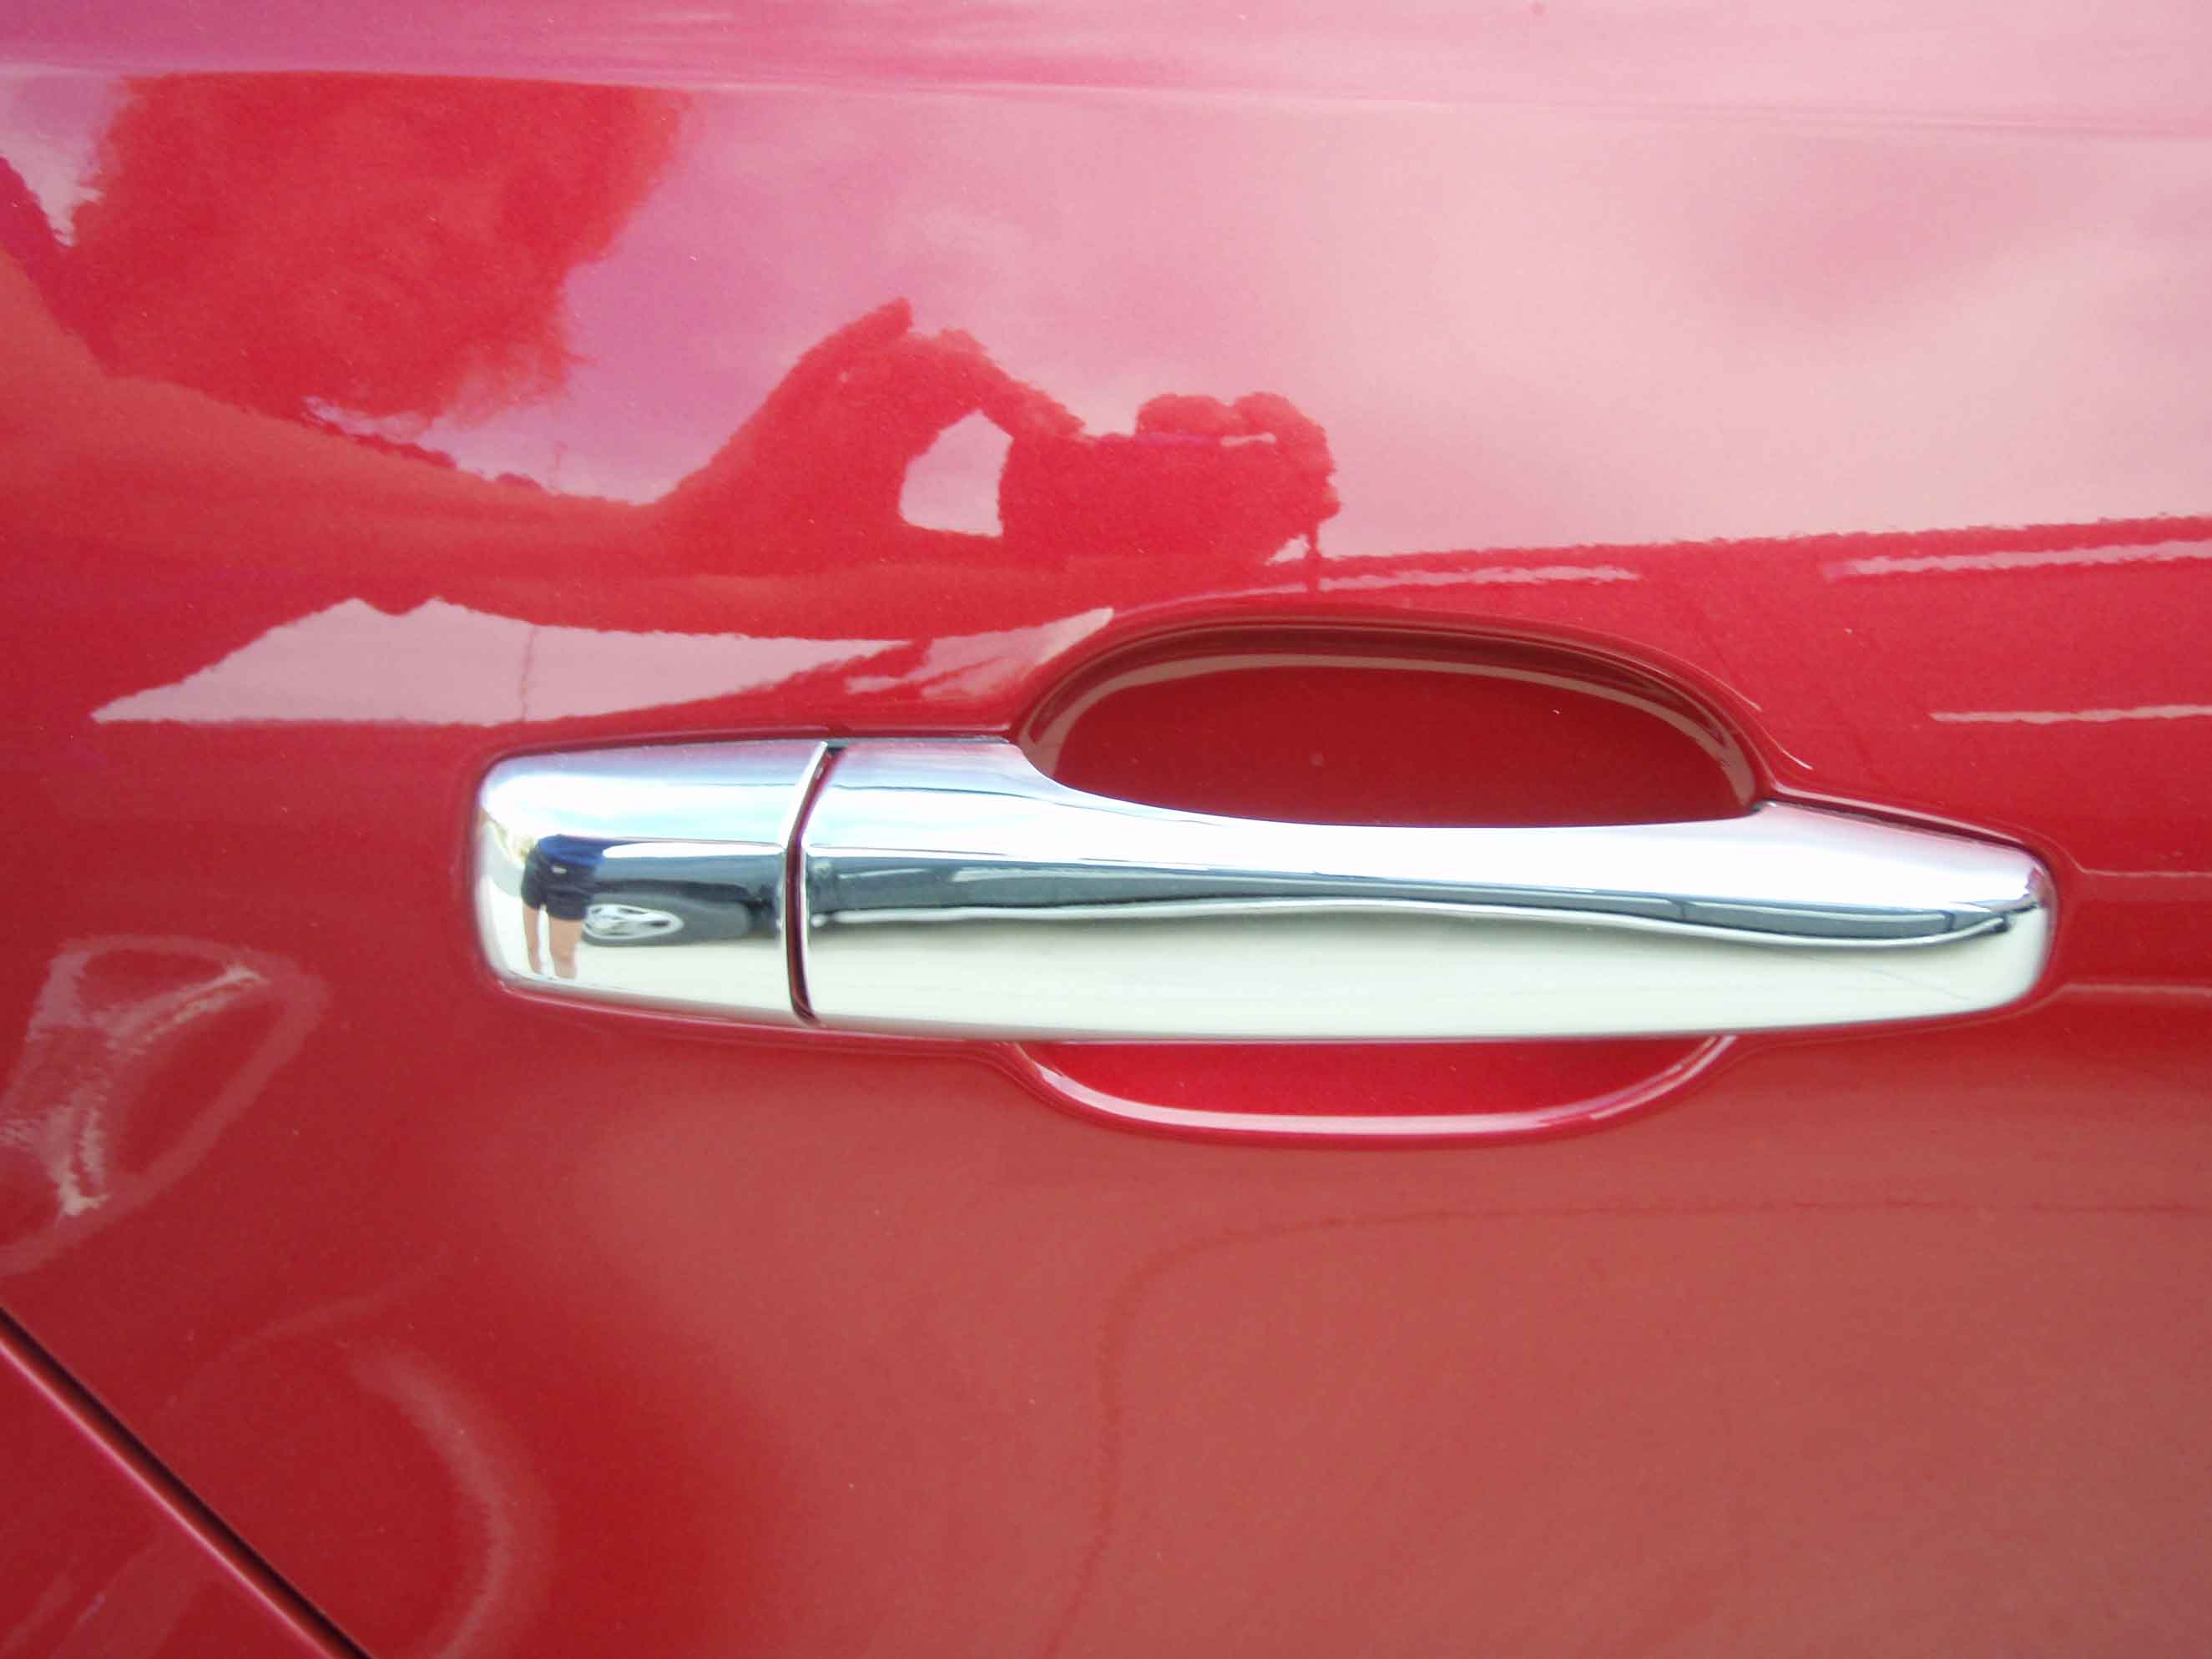 2014 Cadillac Cts For Sale >> Cadillac CTS Chrome Door Handle / Mirror Cover Trim Package